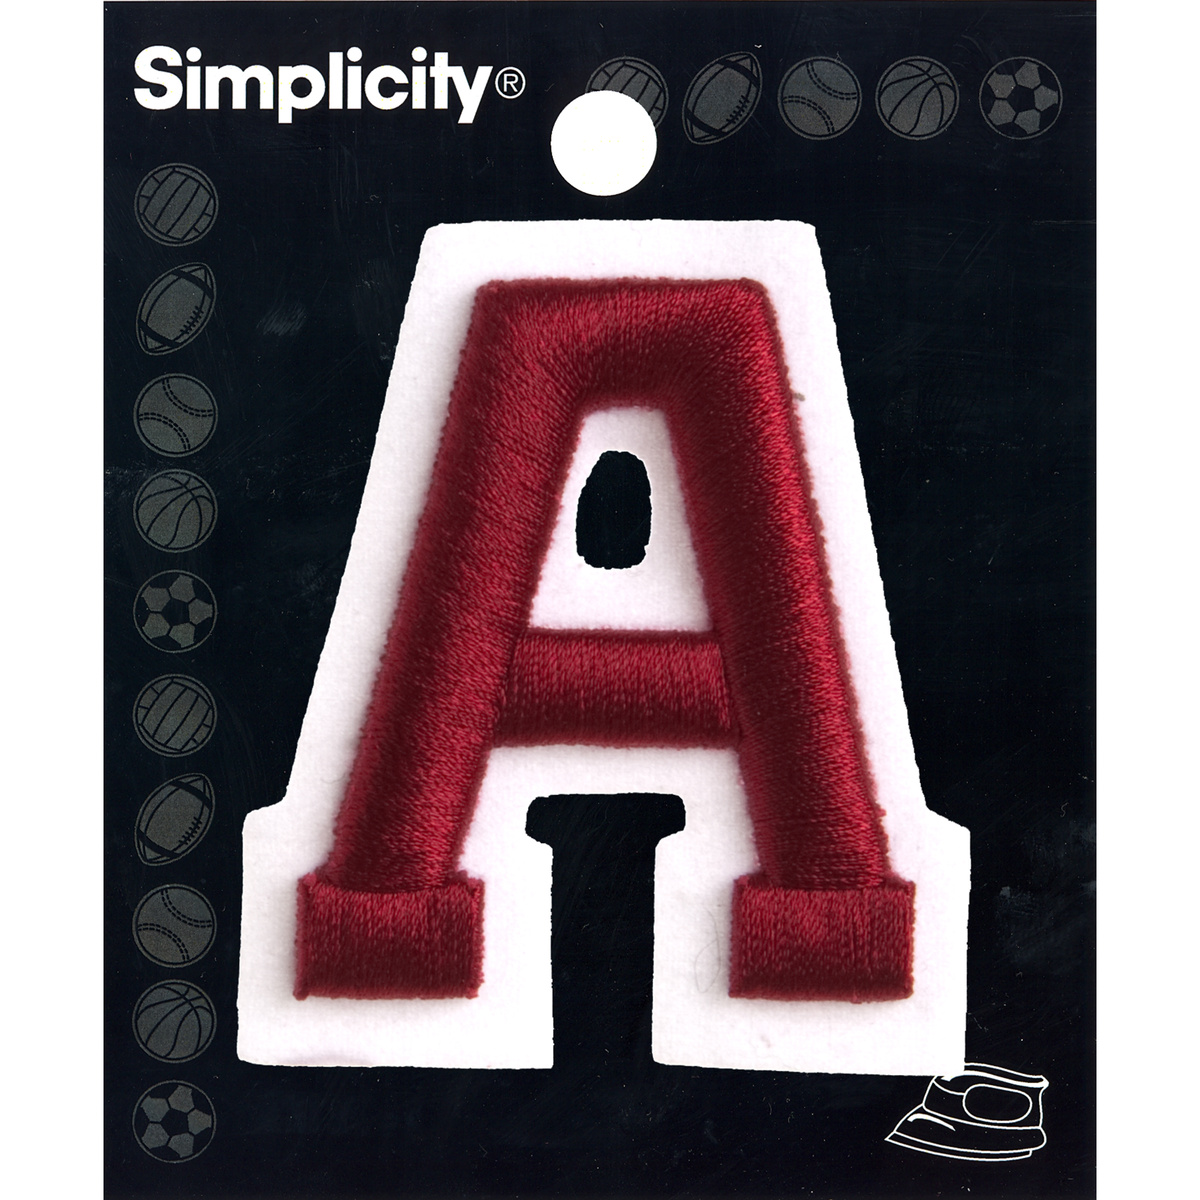 2\u0022 Raised Embroidery Letter Iron On, Red